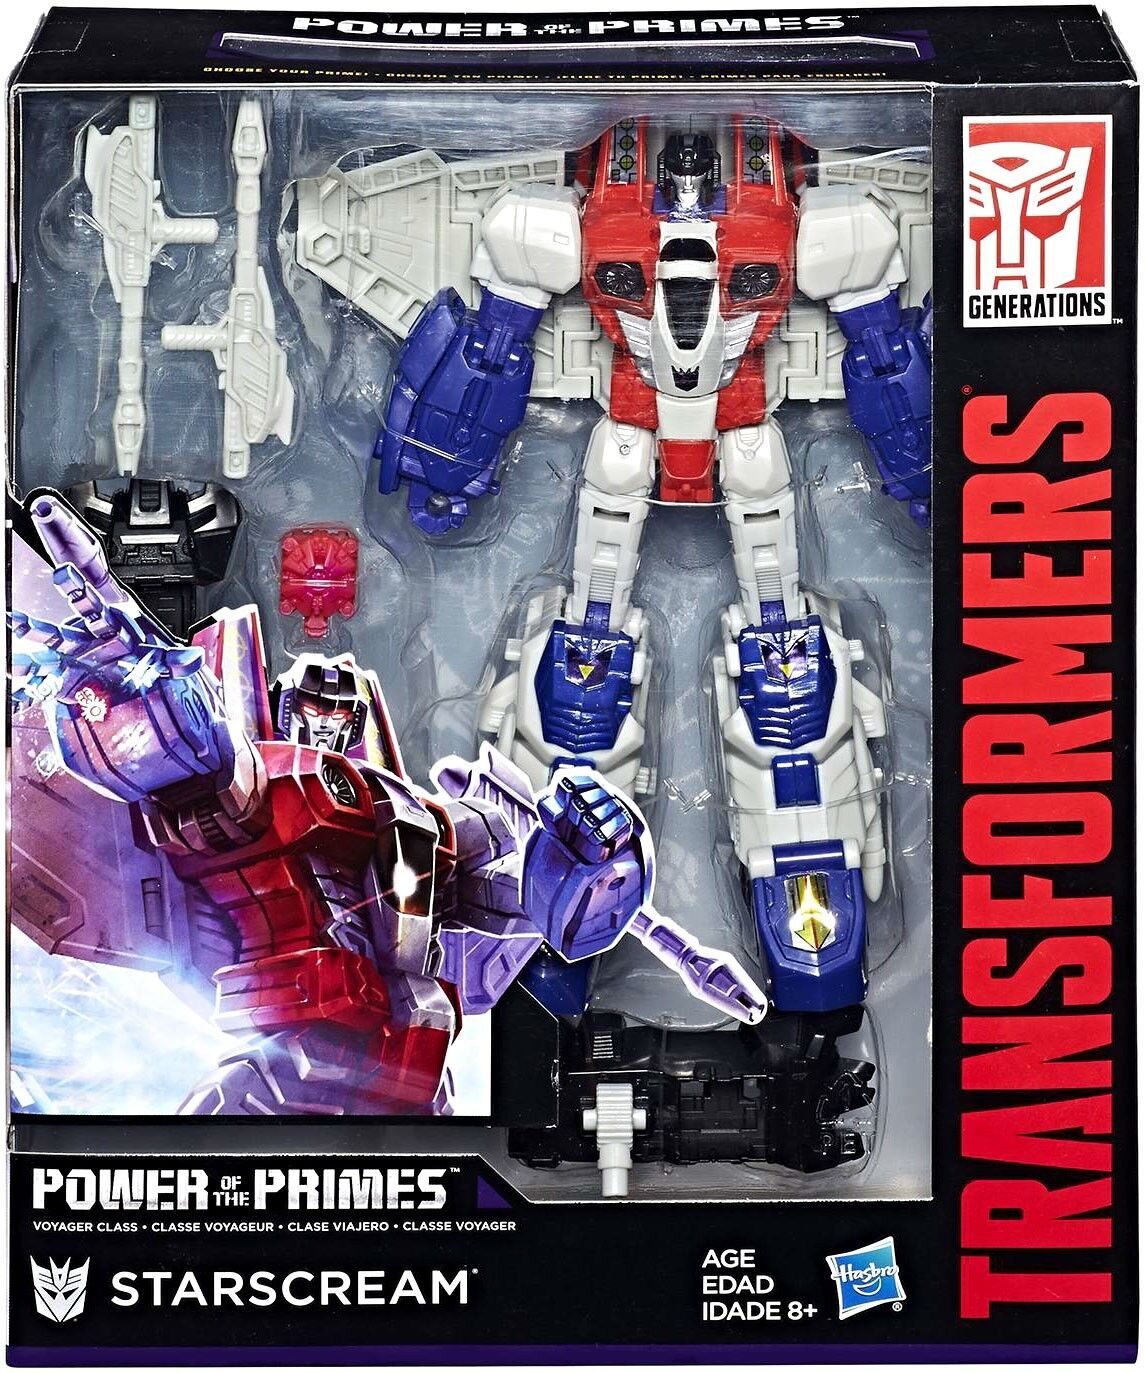 Transformers Generations Power of the Primes Starscream Voyager Action Figure